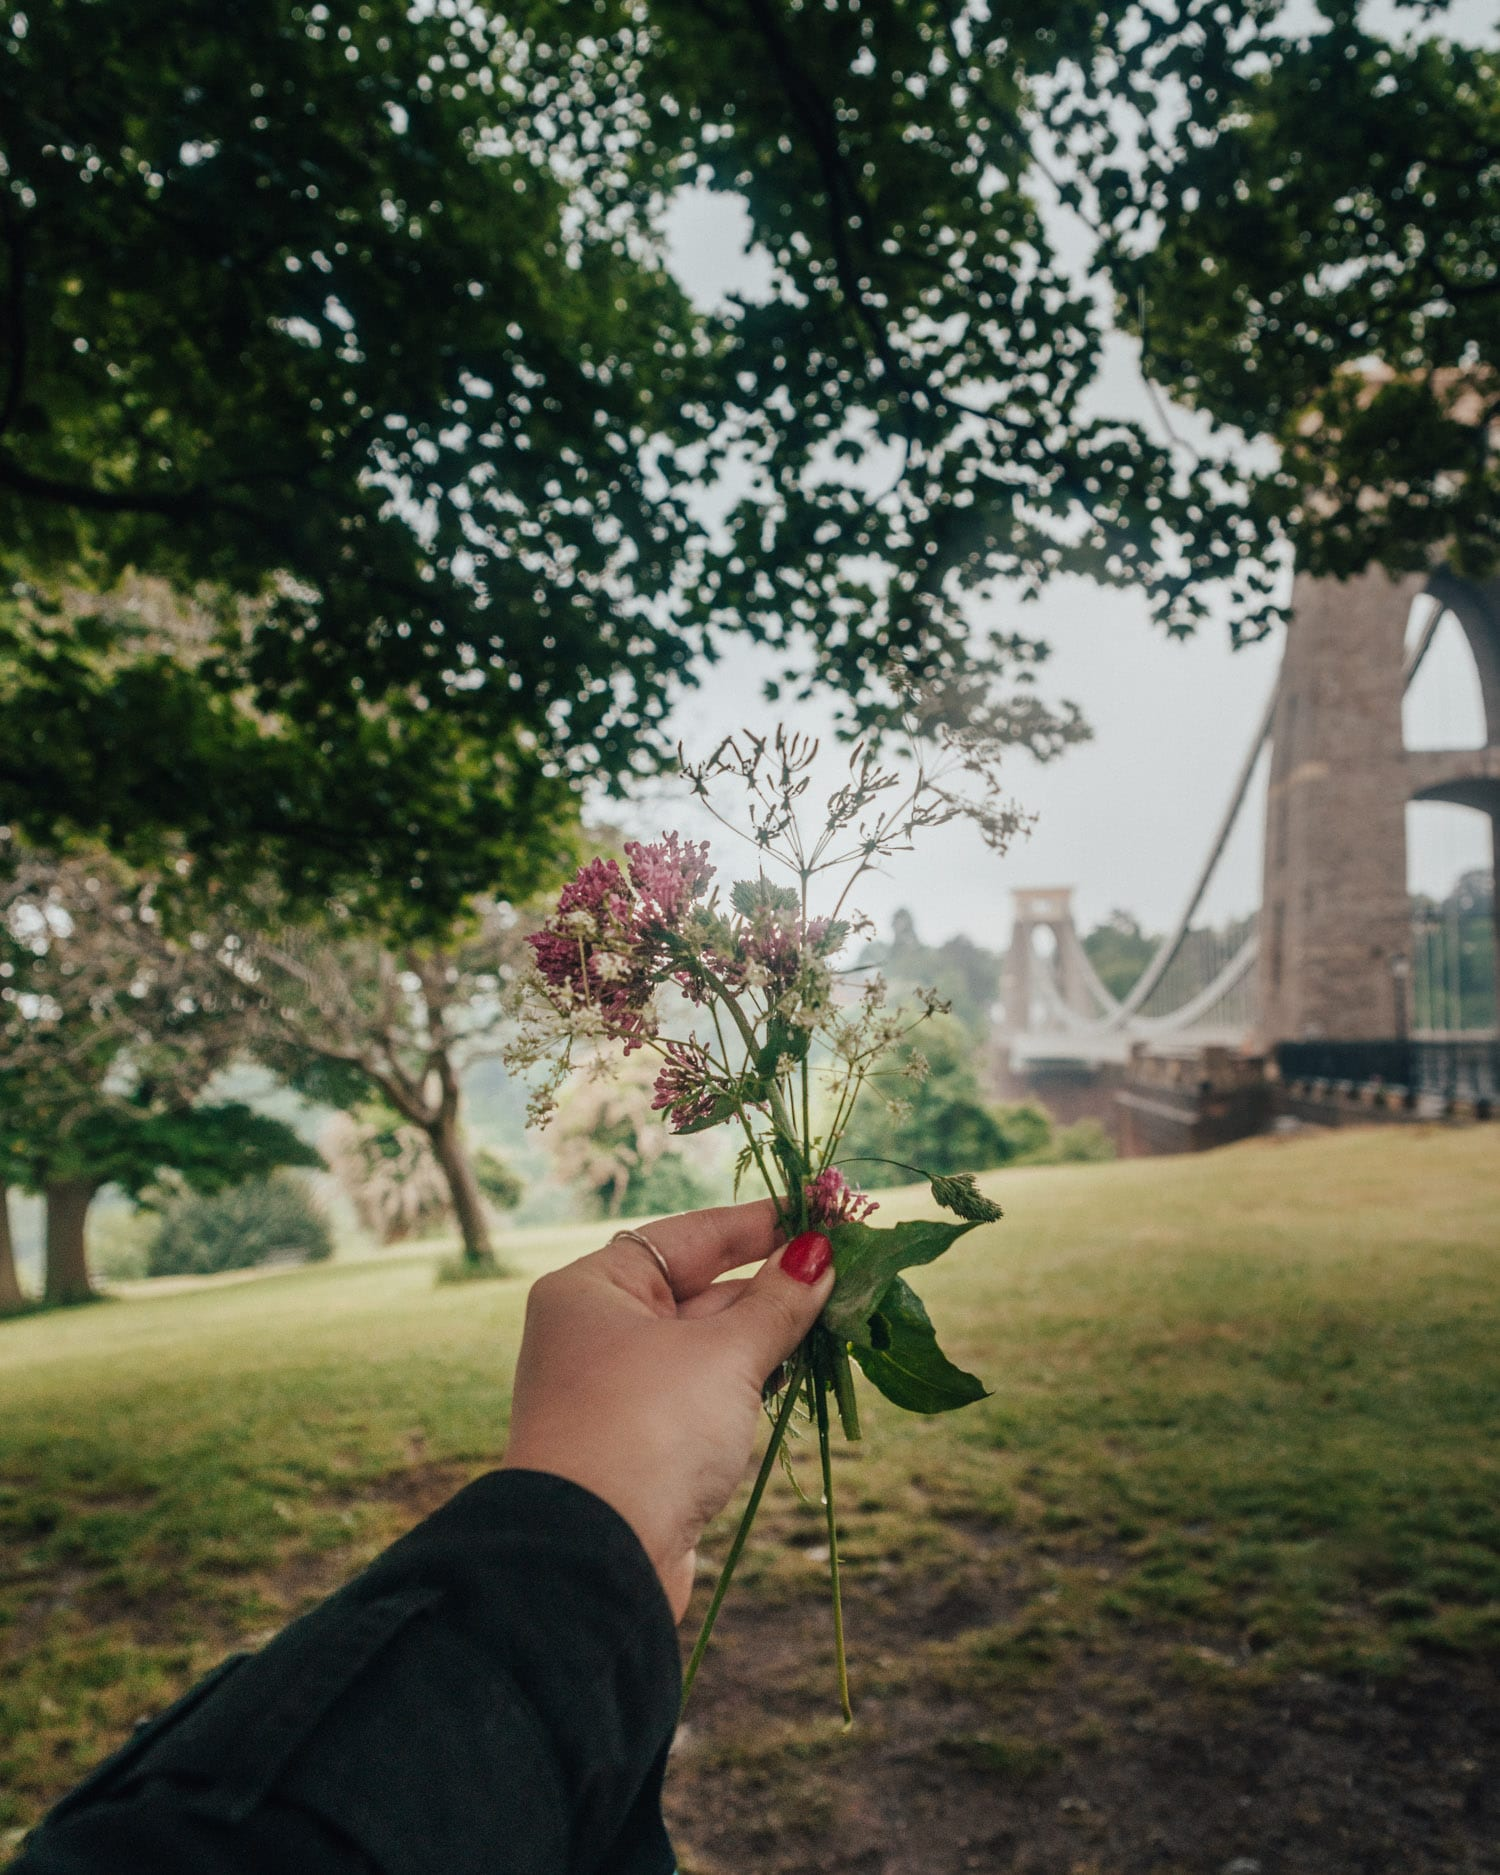 Clifton Suspension Bridge |Things to See in Bristol